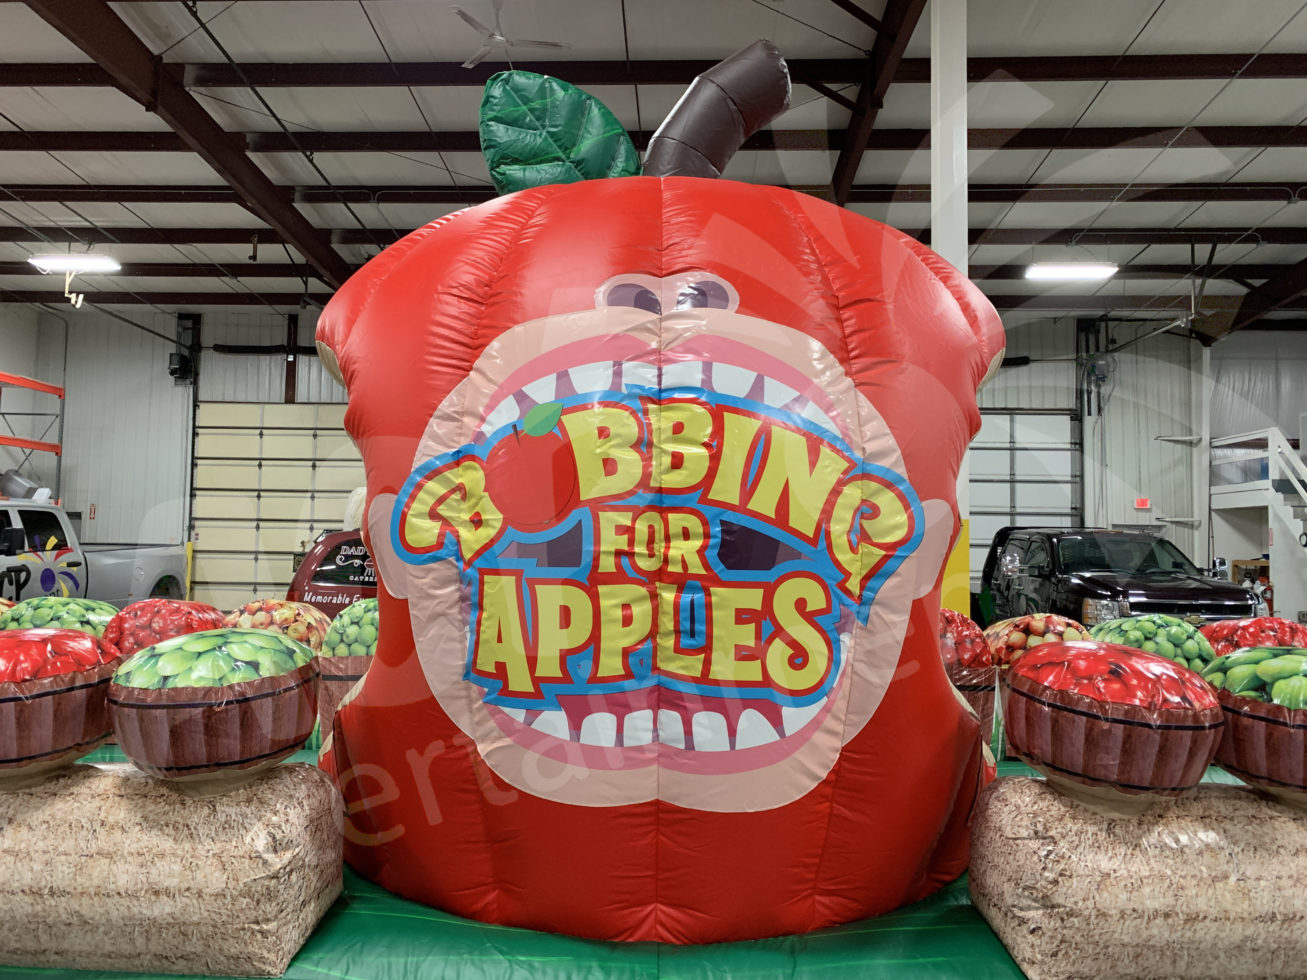 Bobbing for Apples center apple logo